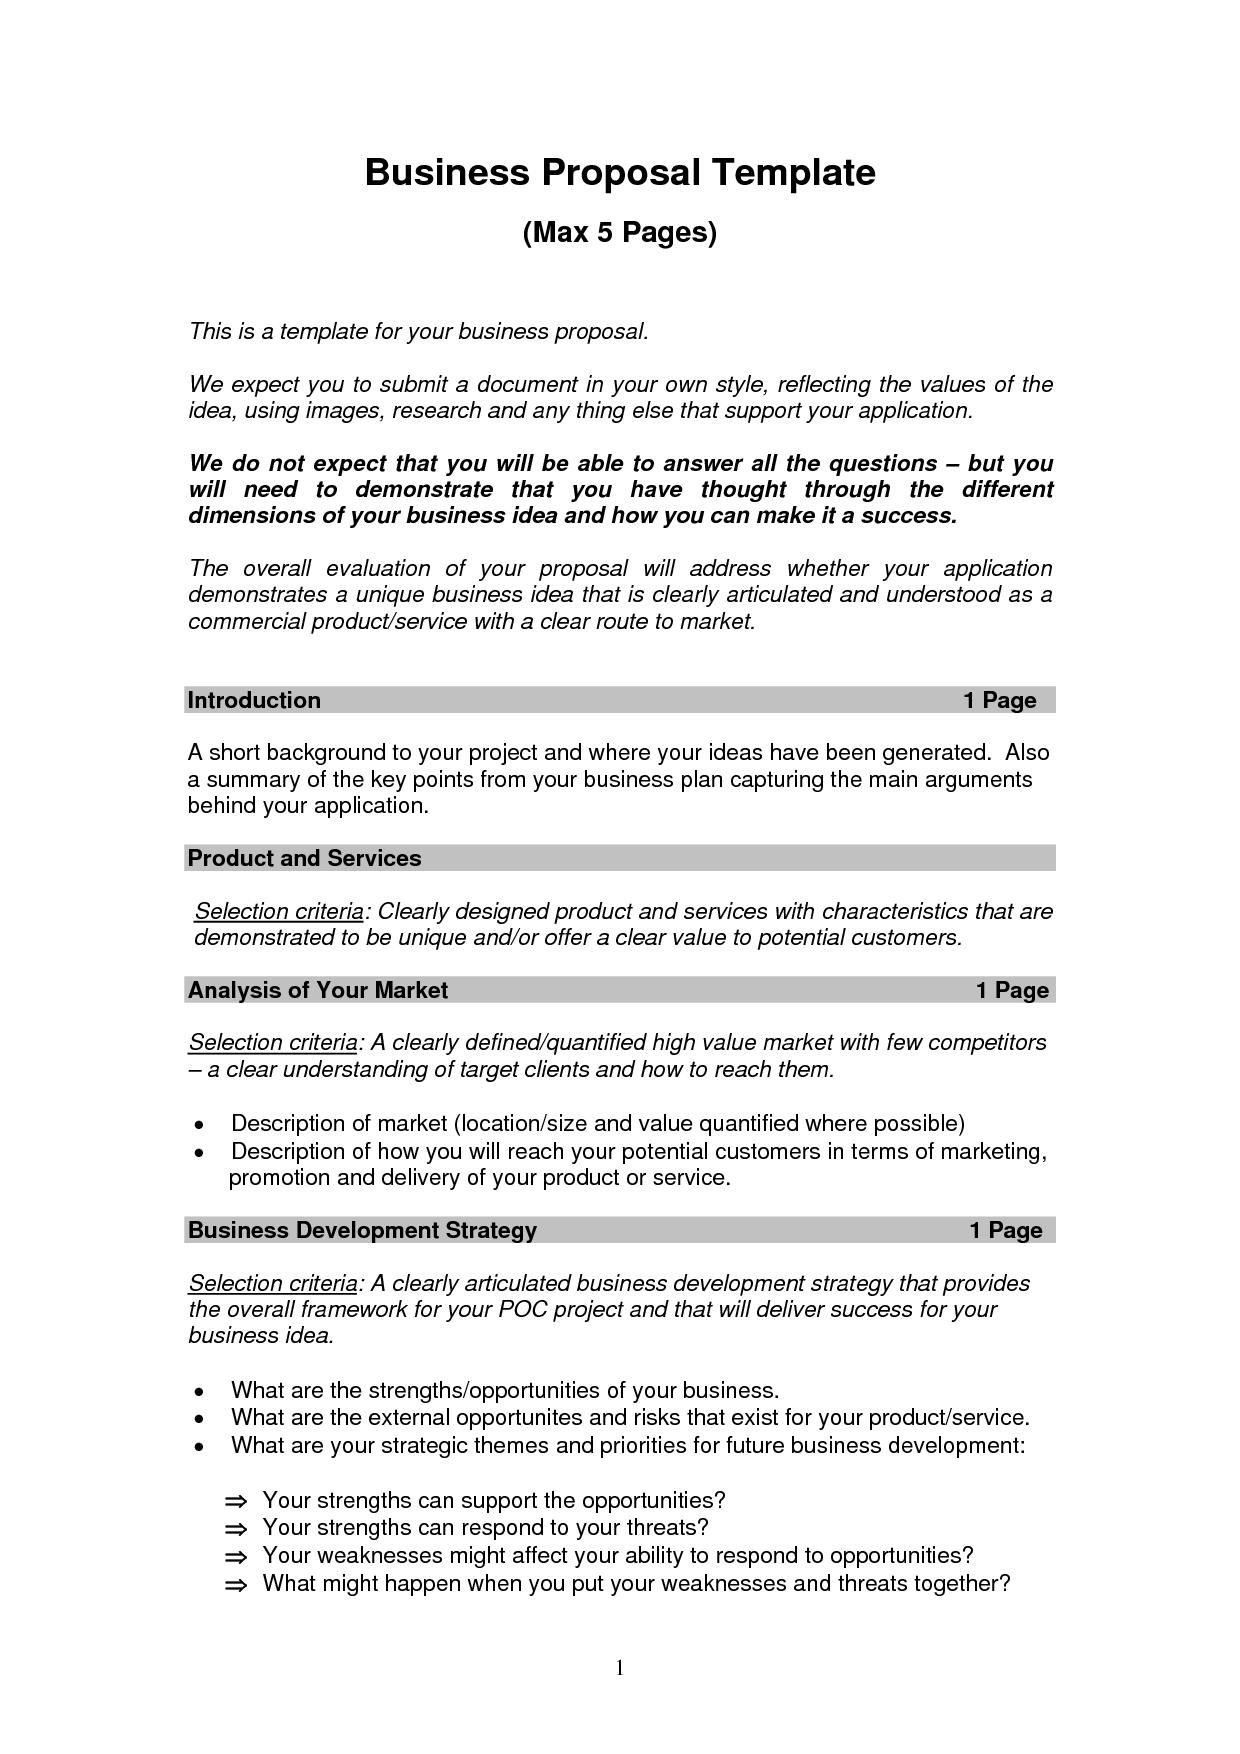 Business Proposal Templates Examples  Business Proposal Sample Regarding Written Proposal Template